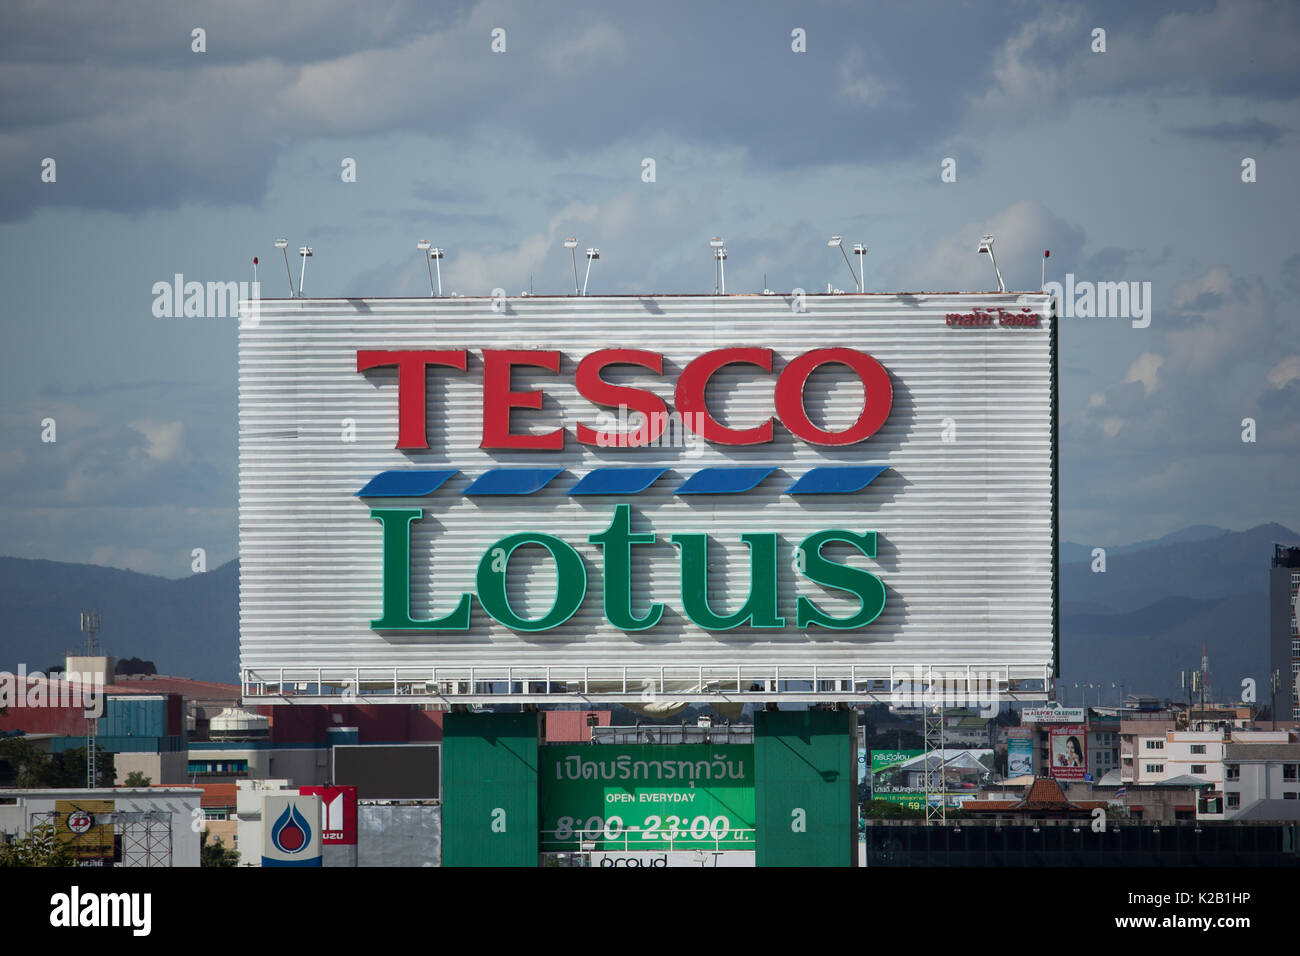 tesco lotus thailand Provide lots of items with extremely attractive price tesco lotus is a large supermarket in ao nang it also places to eat and hang out by both tourists and locals.